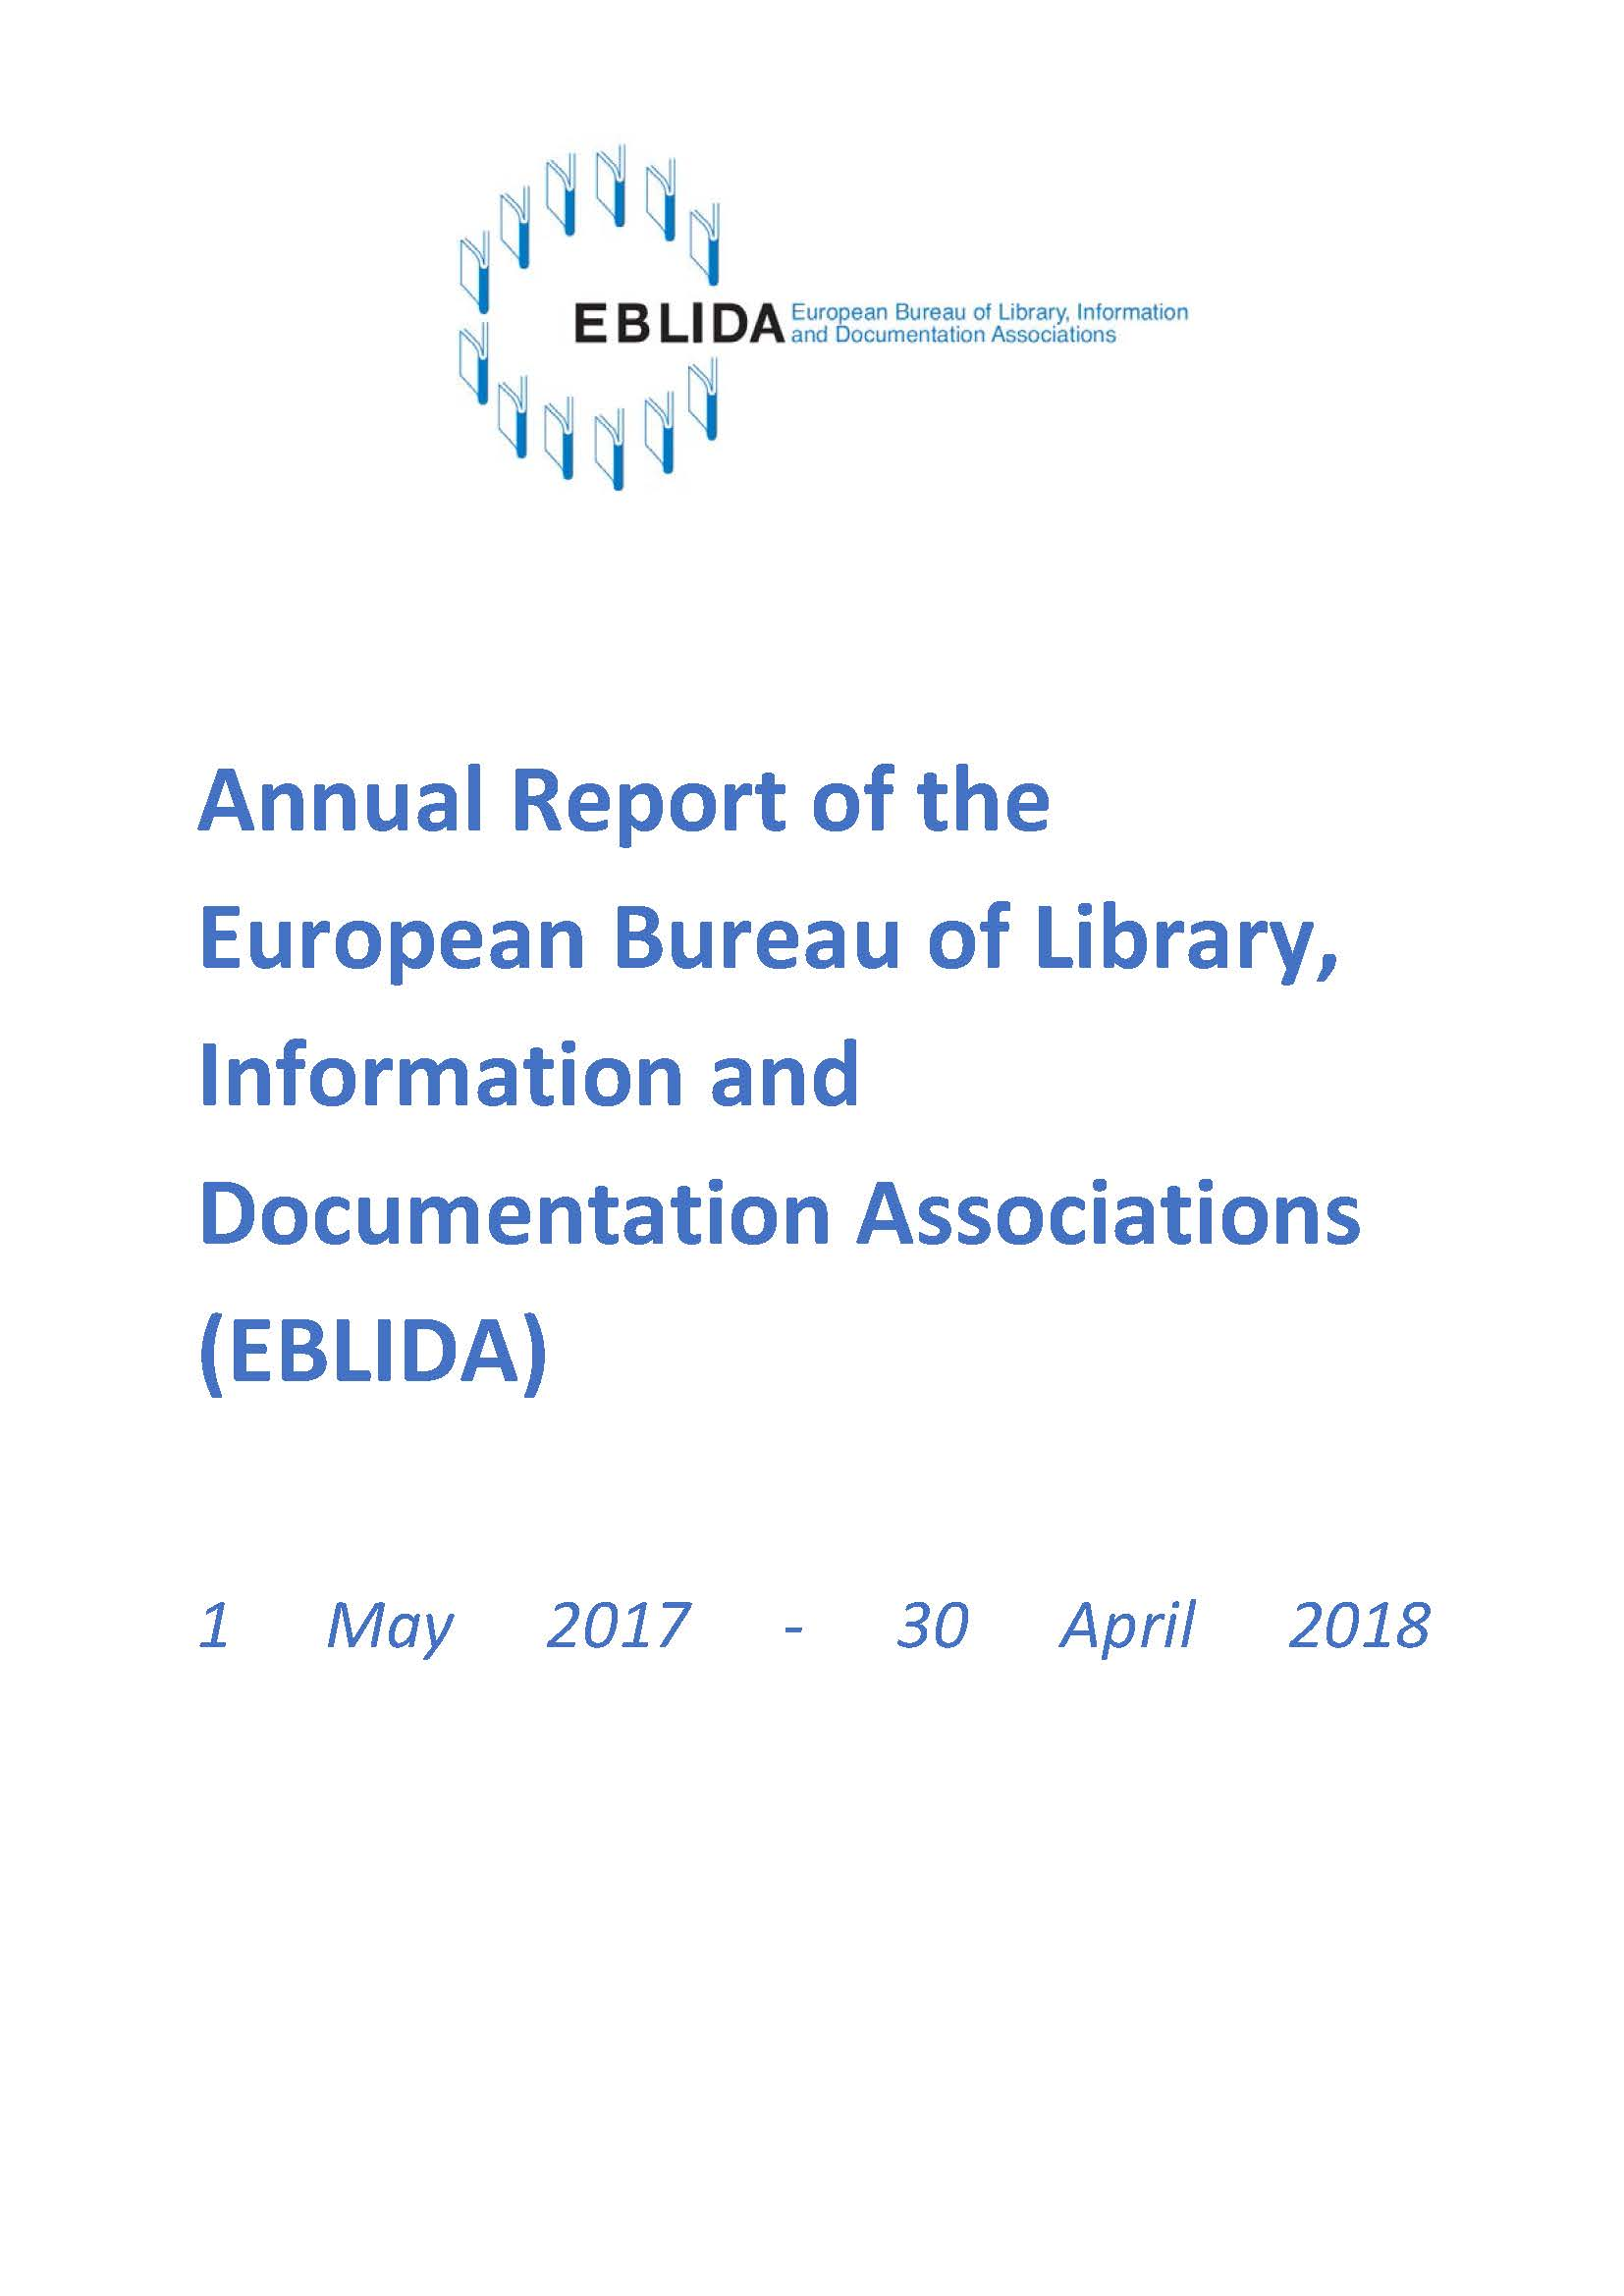 EBLIDA Annual Report 2017-2018